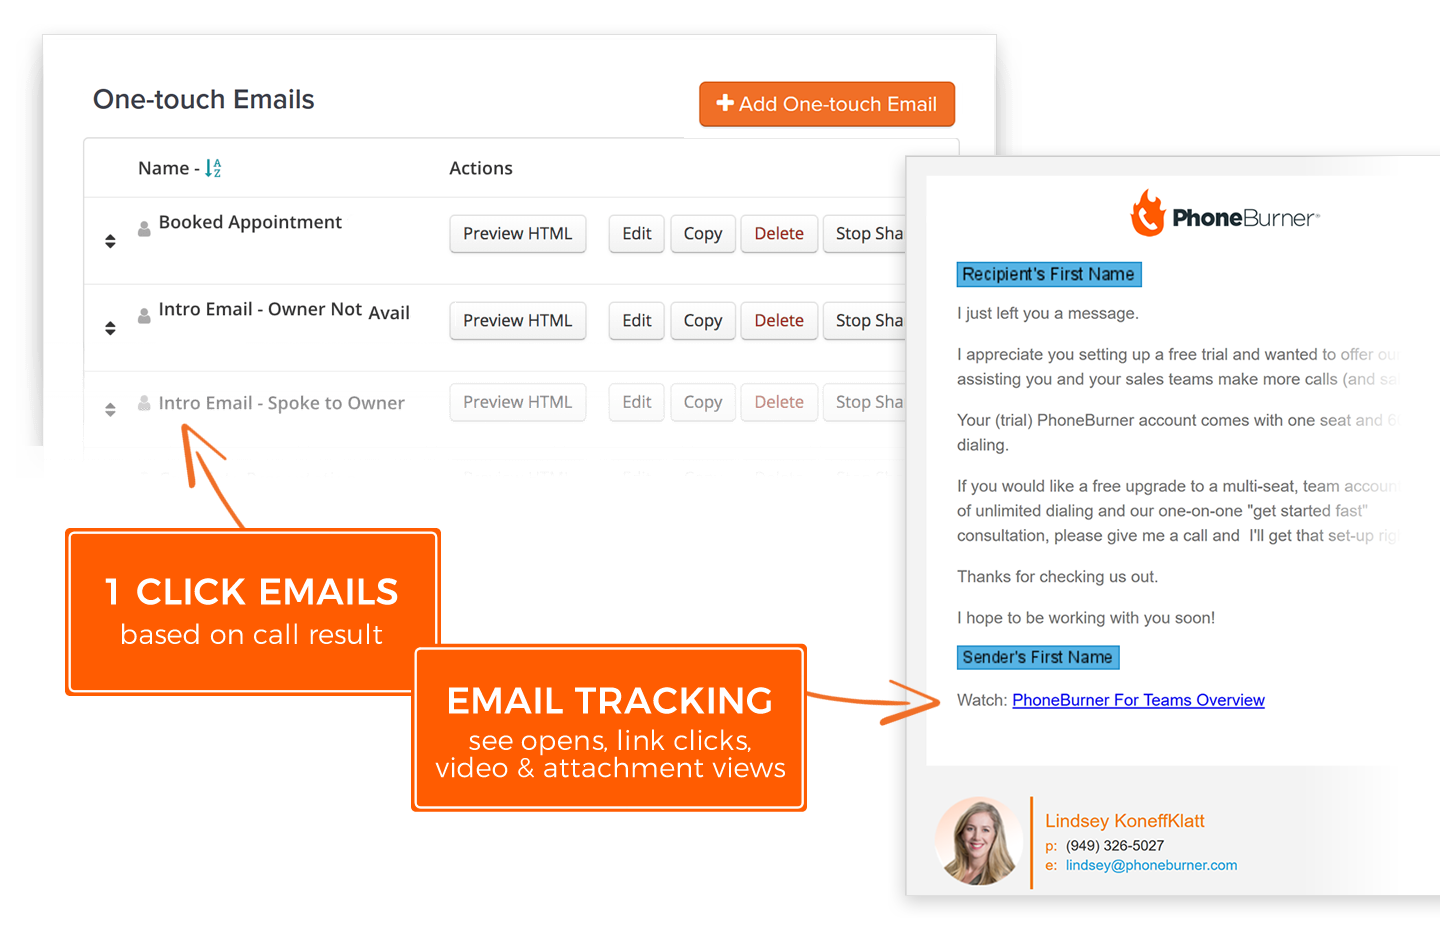 Send a personalized email after any call outcome with one click. Track email opens, link clicks, video views and more.